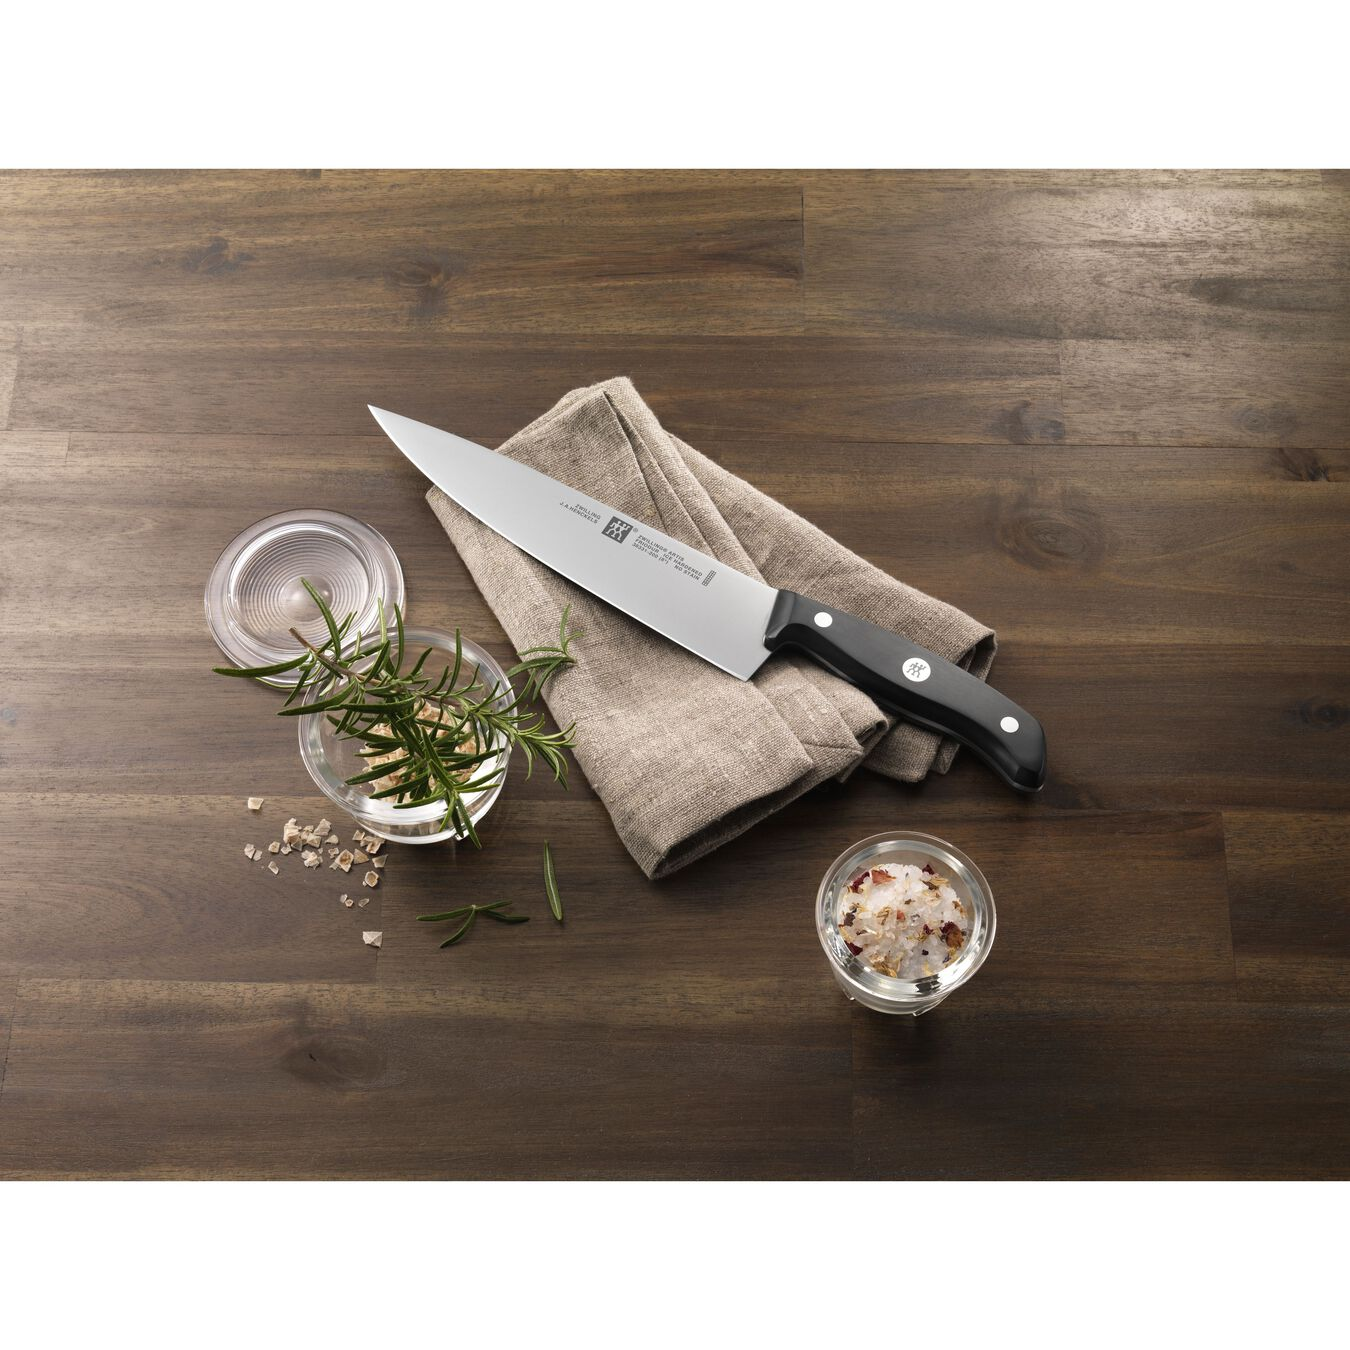 8 inch Chef's knife,,large 5